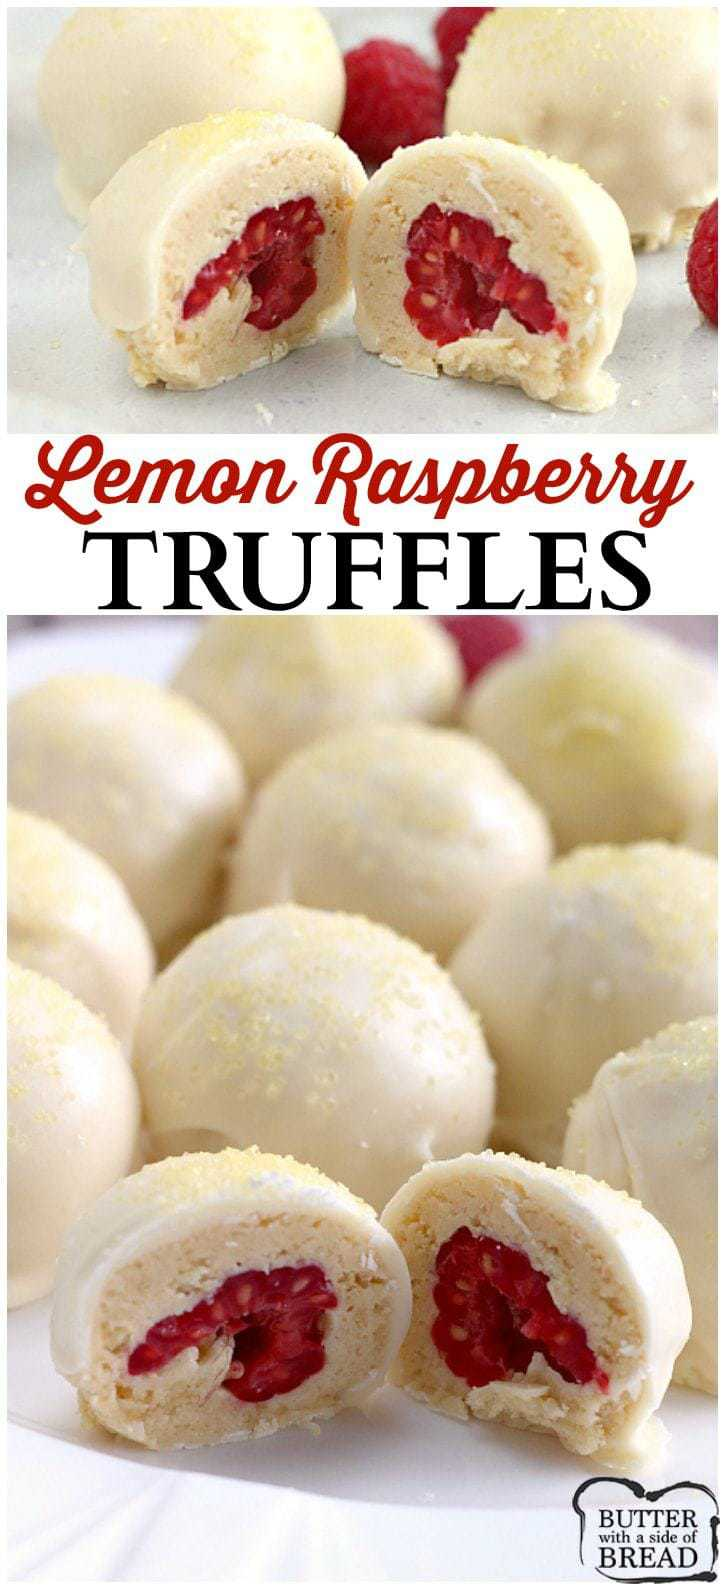 Easy Lemon Raspberry Truffles - Butter With a Side of Bread